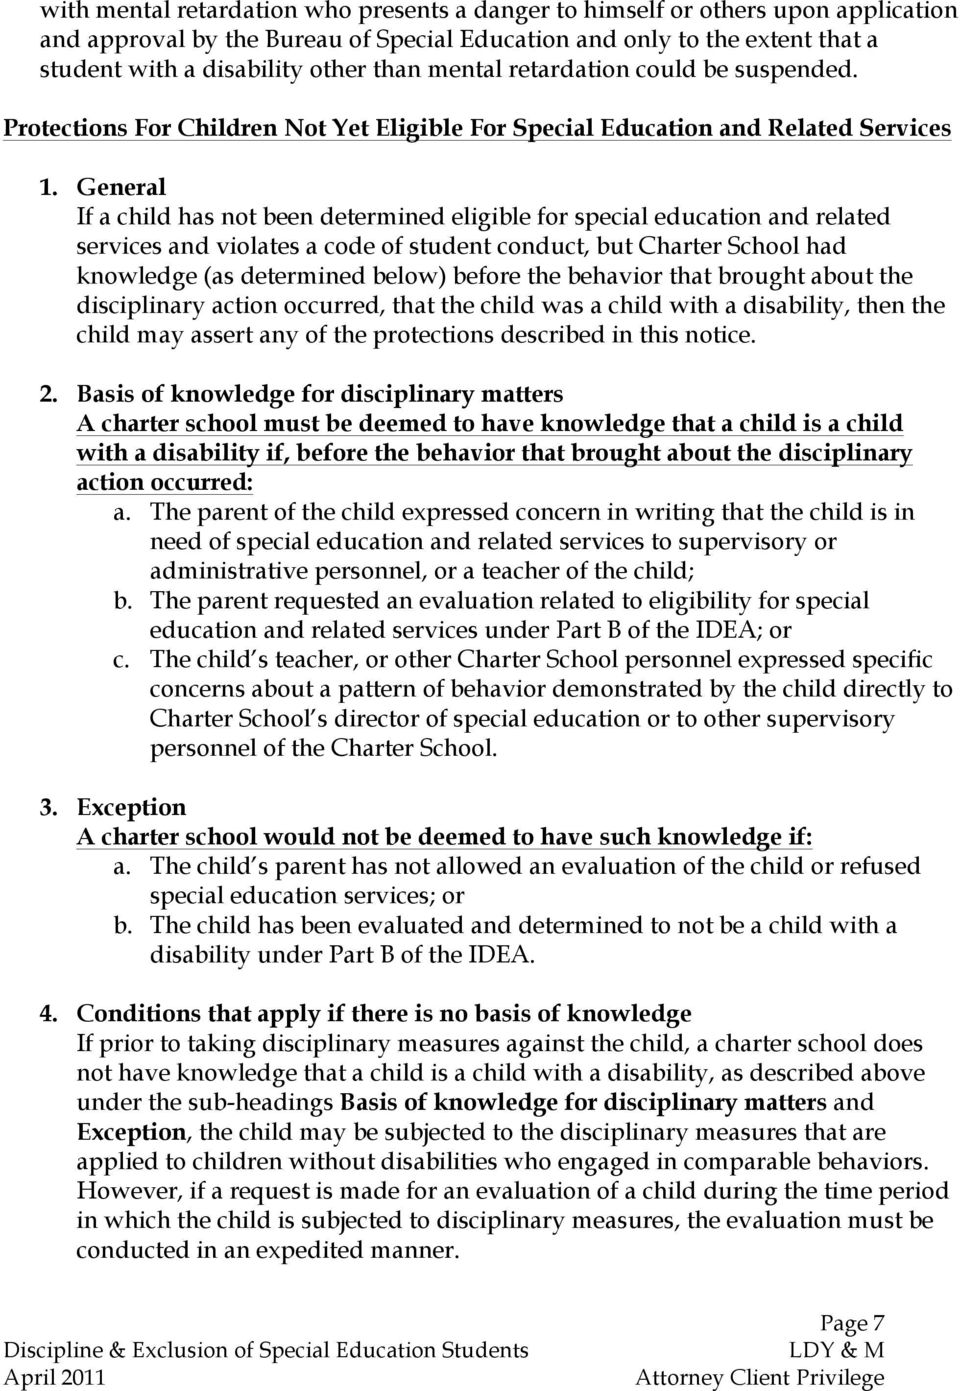 General If a child has not been determined eligible for special education and related services and violates a code of student conduct, but Charter School had knowledge (as determined below) before